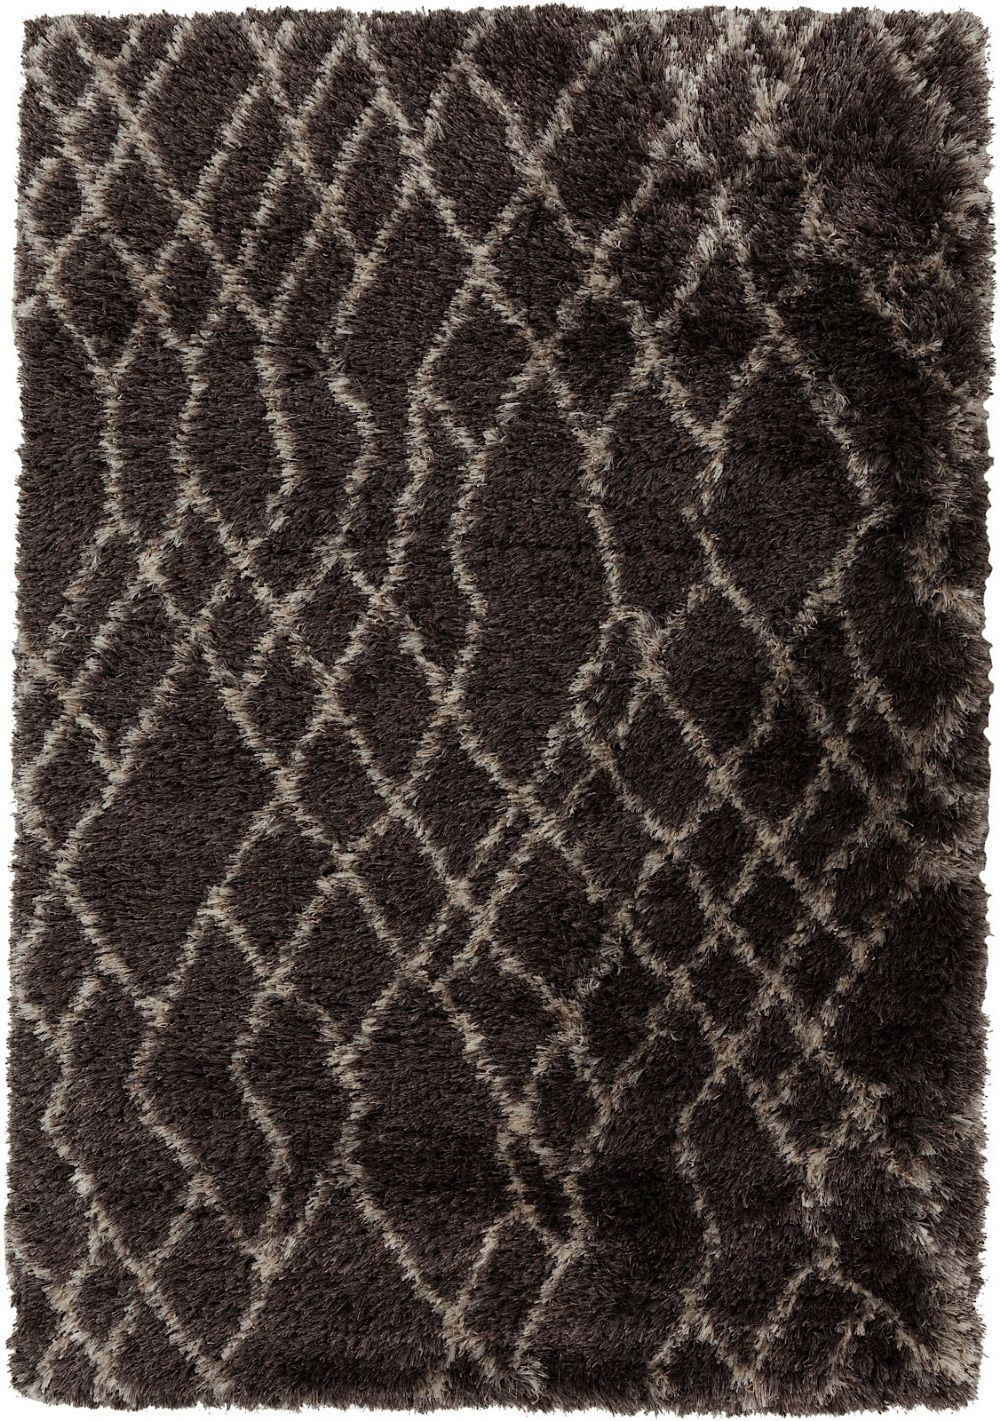 surya rhapsody shag area rug collection